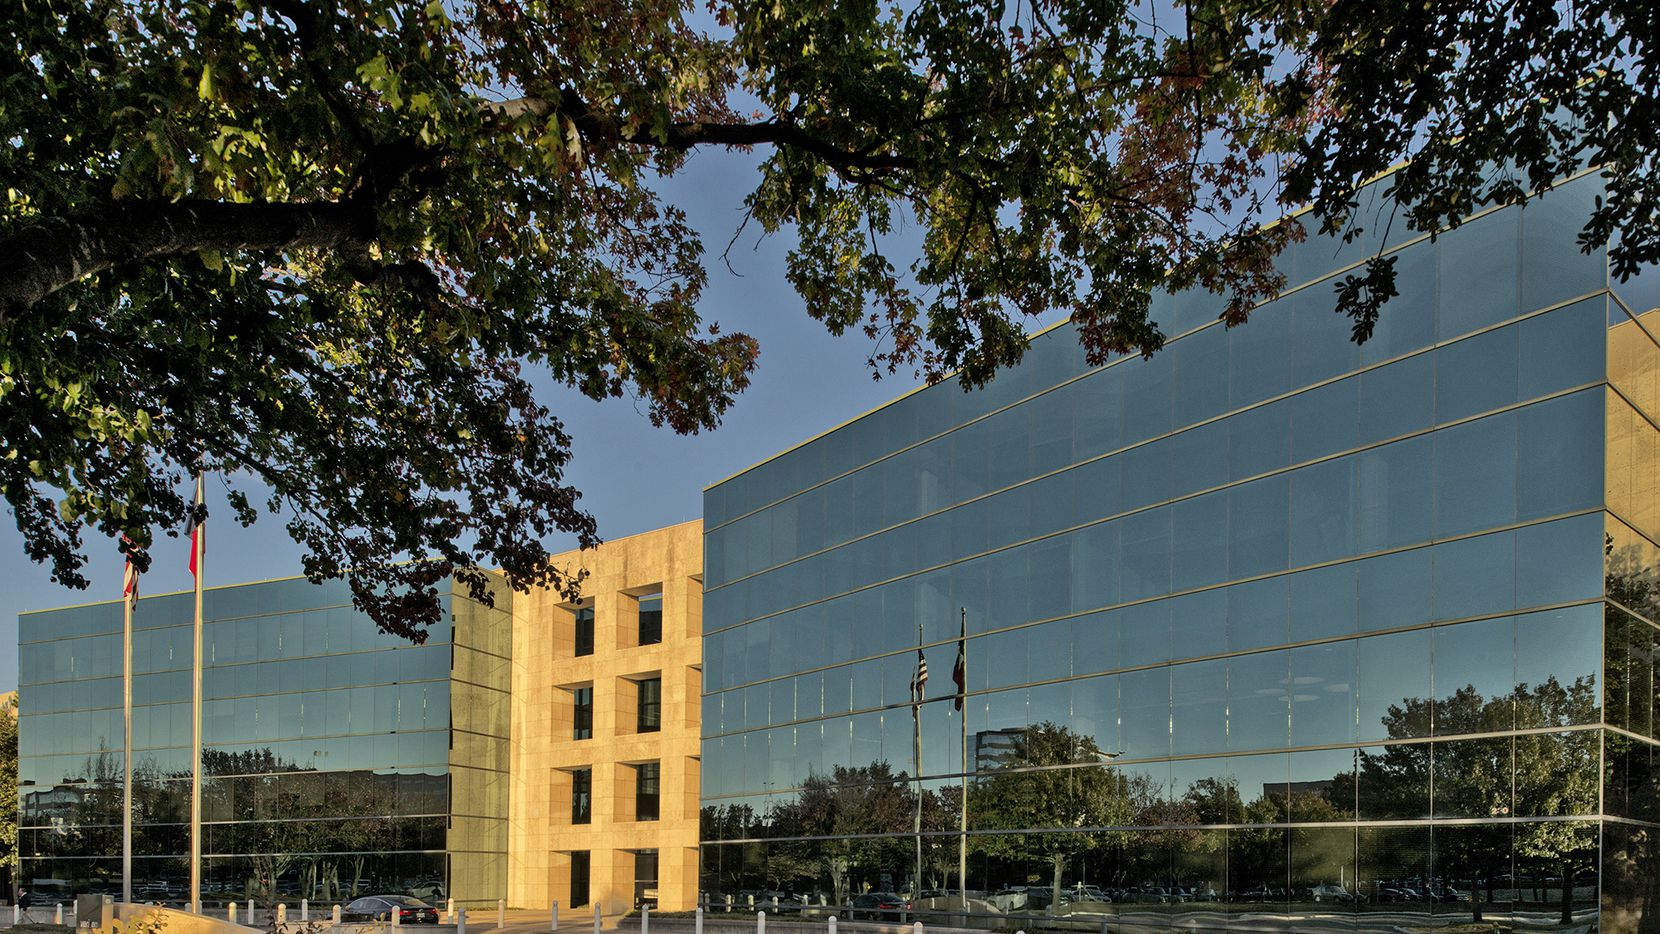 The former Verizon campus in Richardson has signed new legal and tech firm tenants.